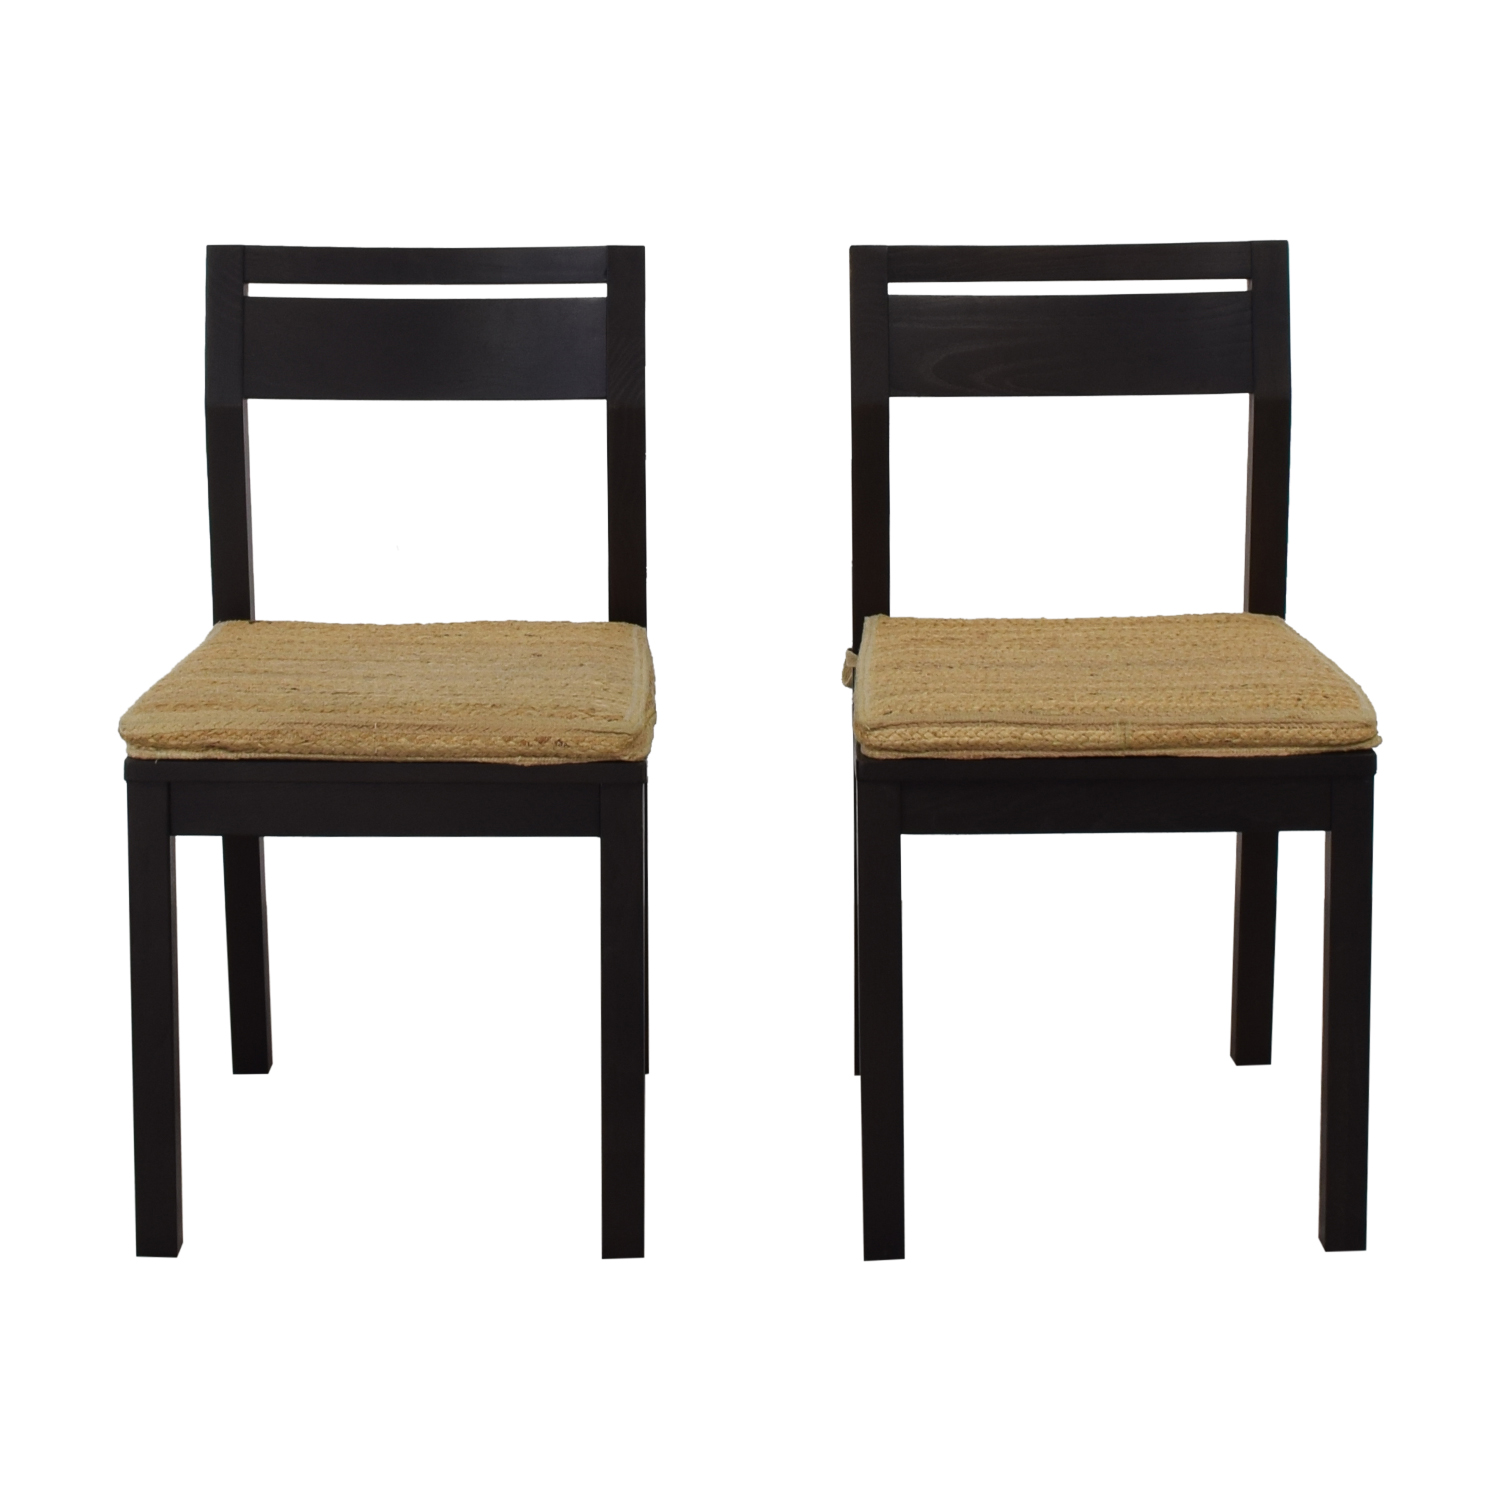 West Elm Dining Chairs with Woven Cushions / Chairs